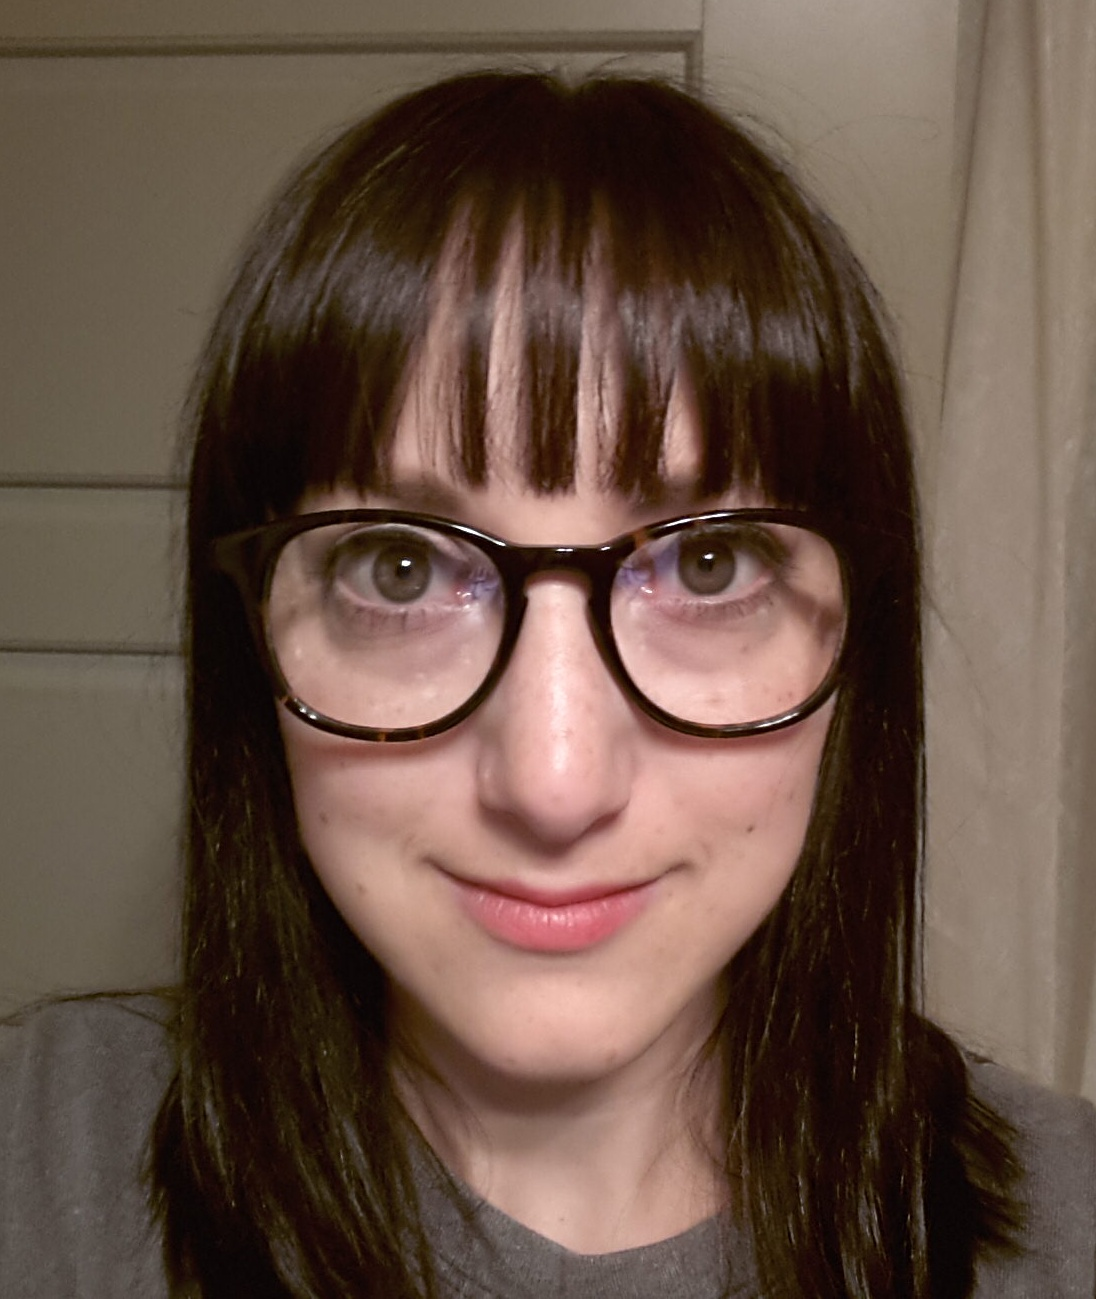 Just frames for glasses - Just To Be Clear No One Has Paid Me To Review Warby Parker Though How Cool Would That Be But I Truly Believe In Sharing When I Have Had A Great